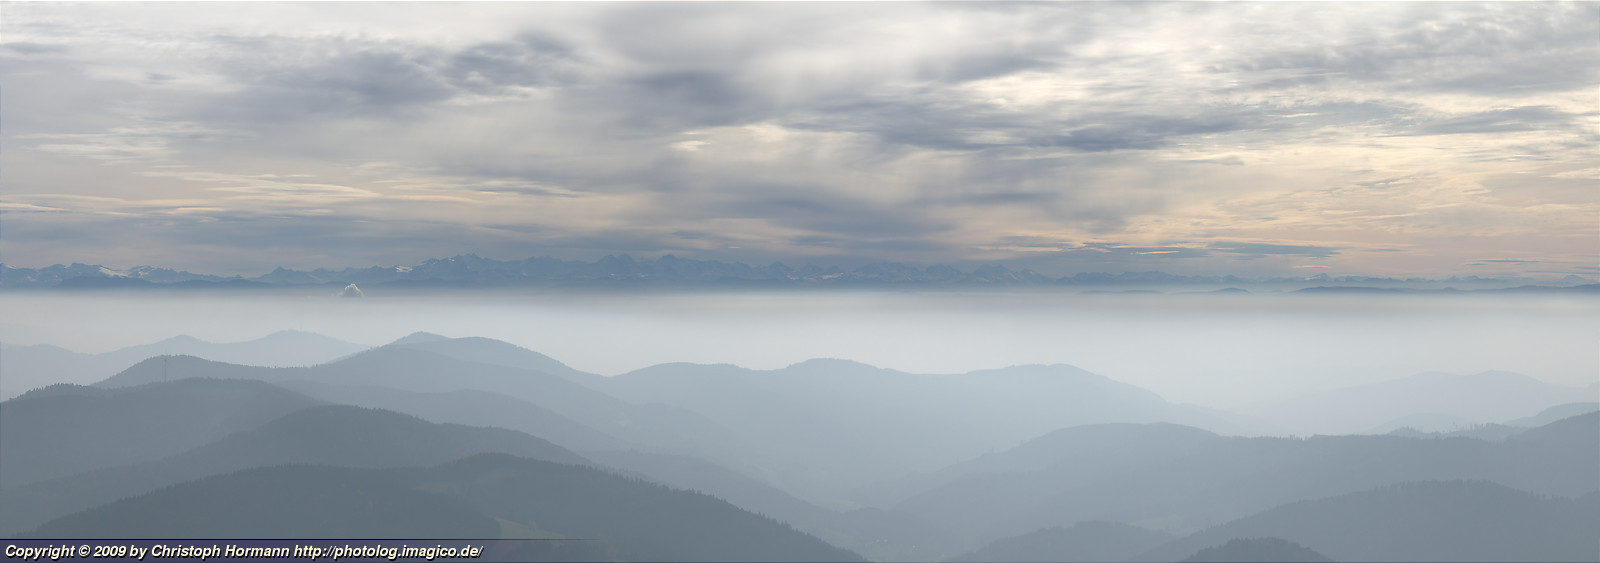 image 48: Alps panorama above the hills of the southern Black Forest